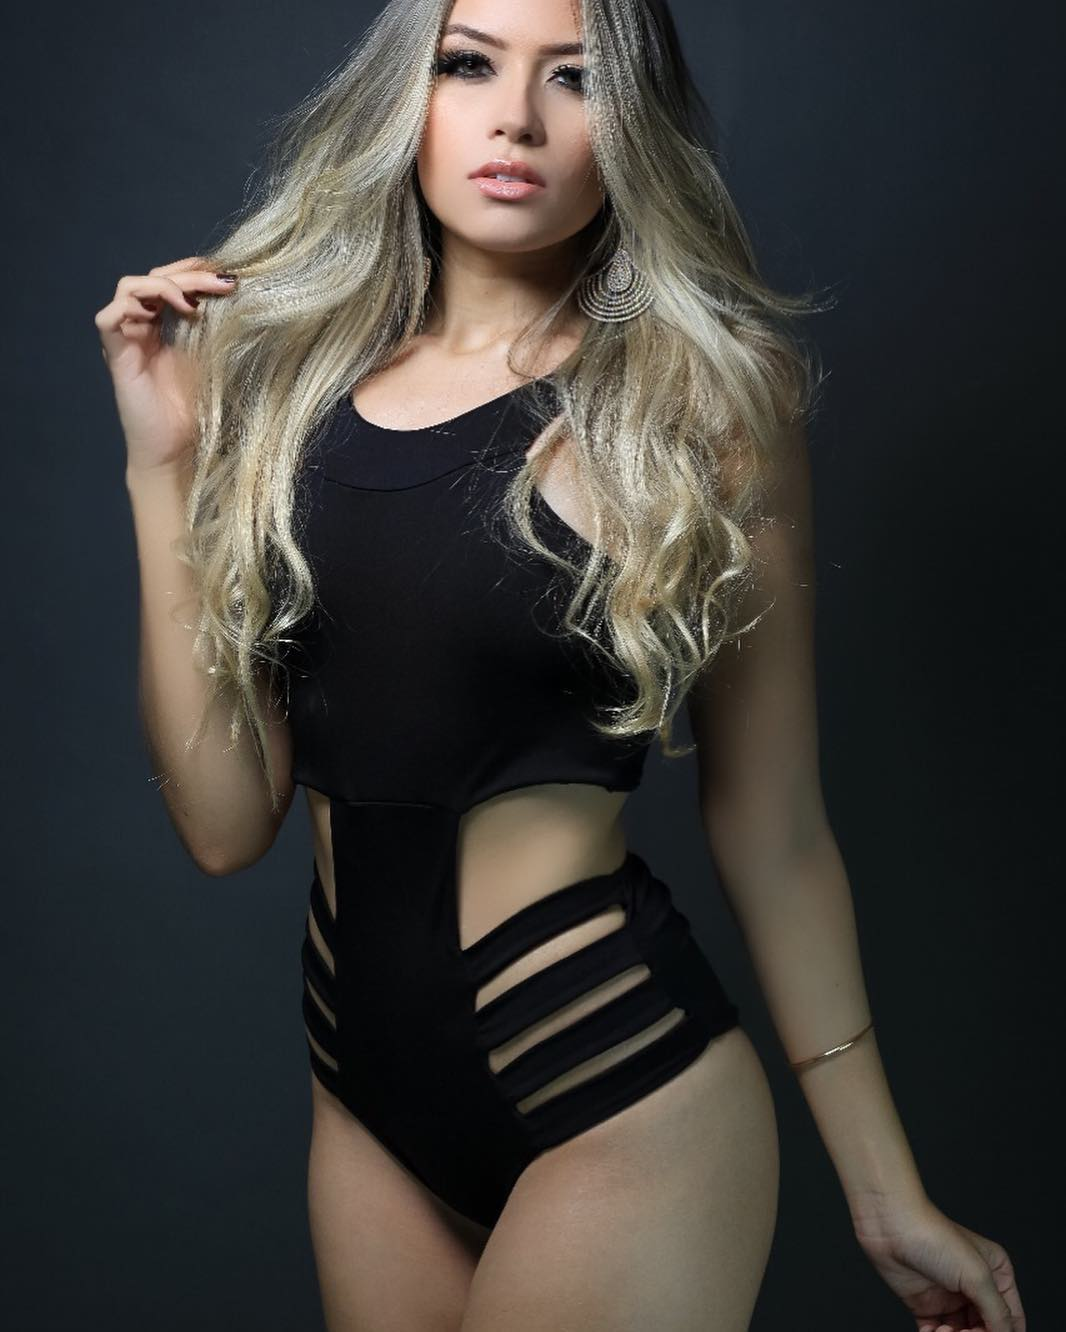 hyalina lins, miss acre mundo 2018. 32233010